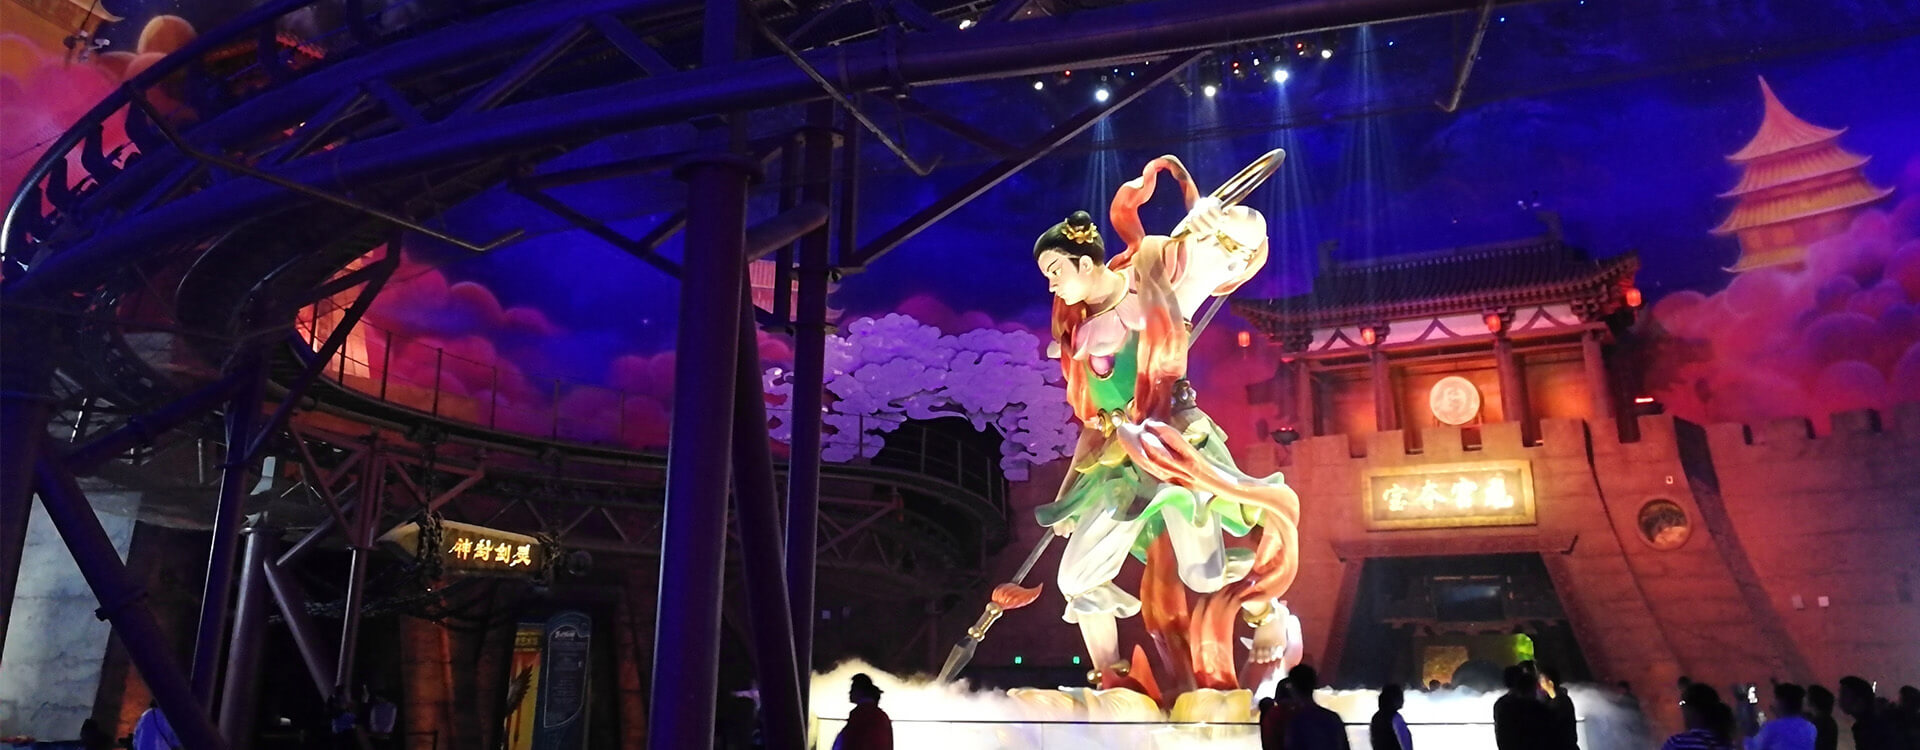 Qingdao 3D Interactive Ride Attraction